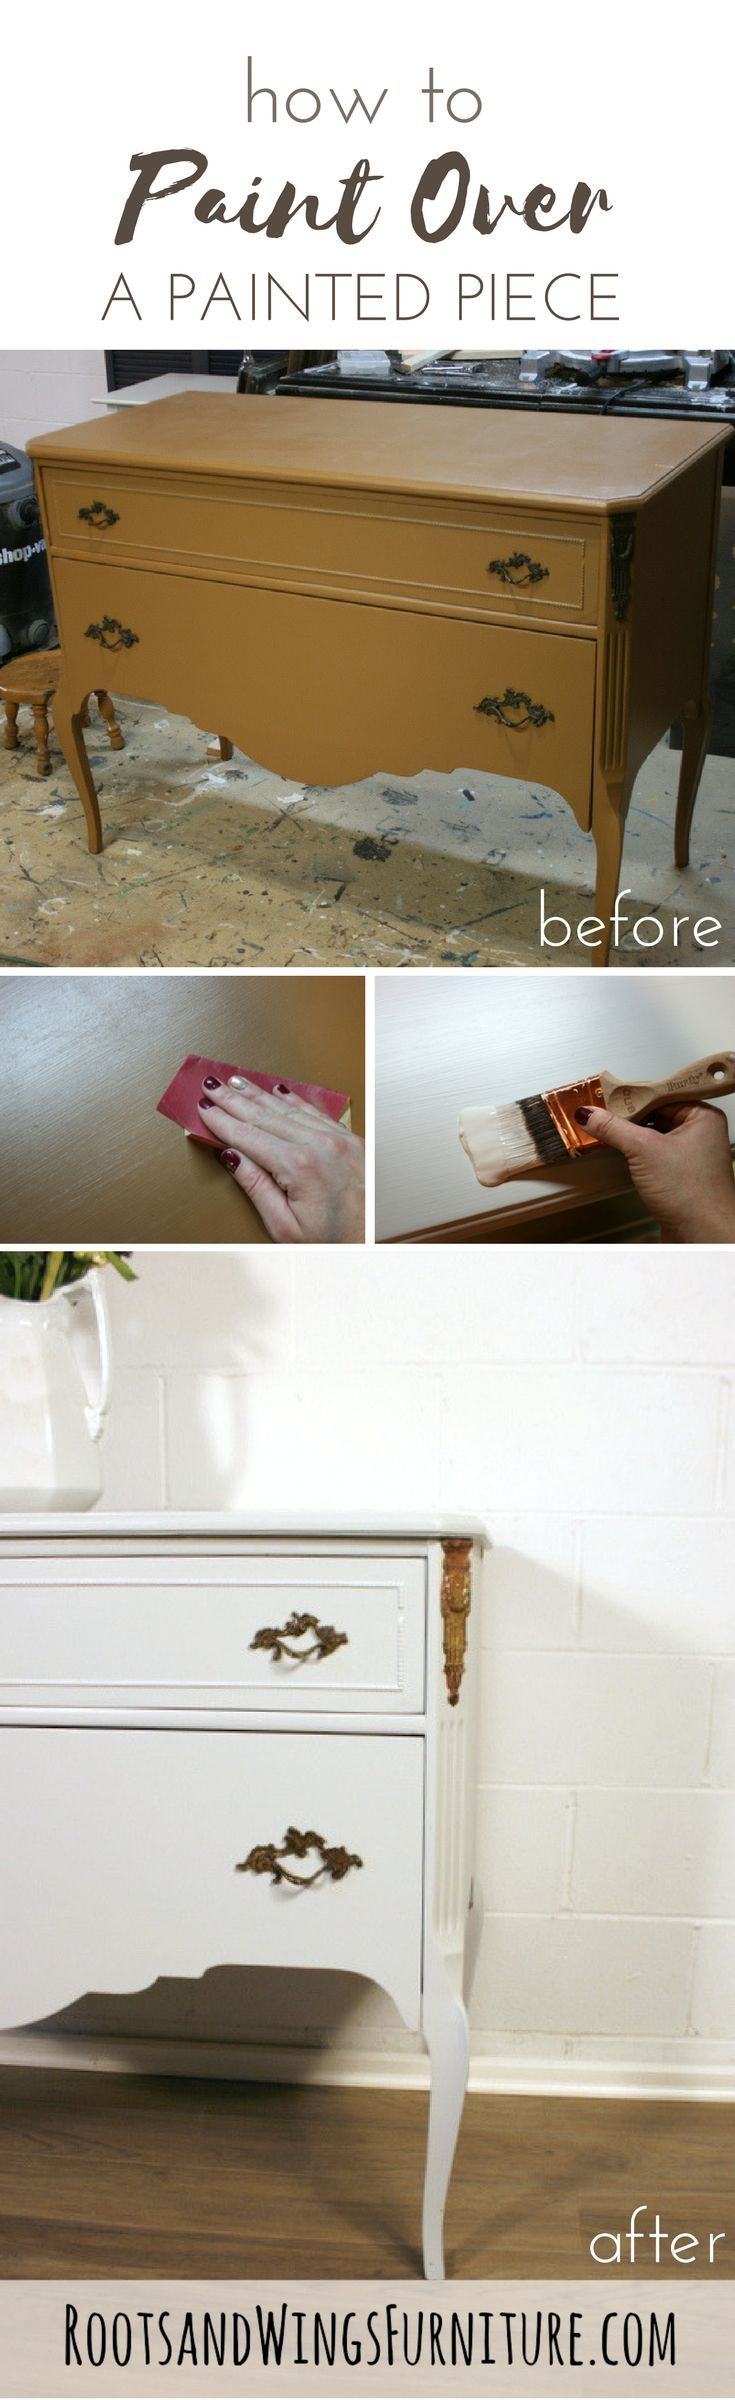 559 Best Furniture Painting Tips Images On Pinterest Painted Furniture Painting Furniture And